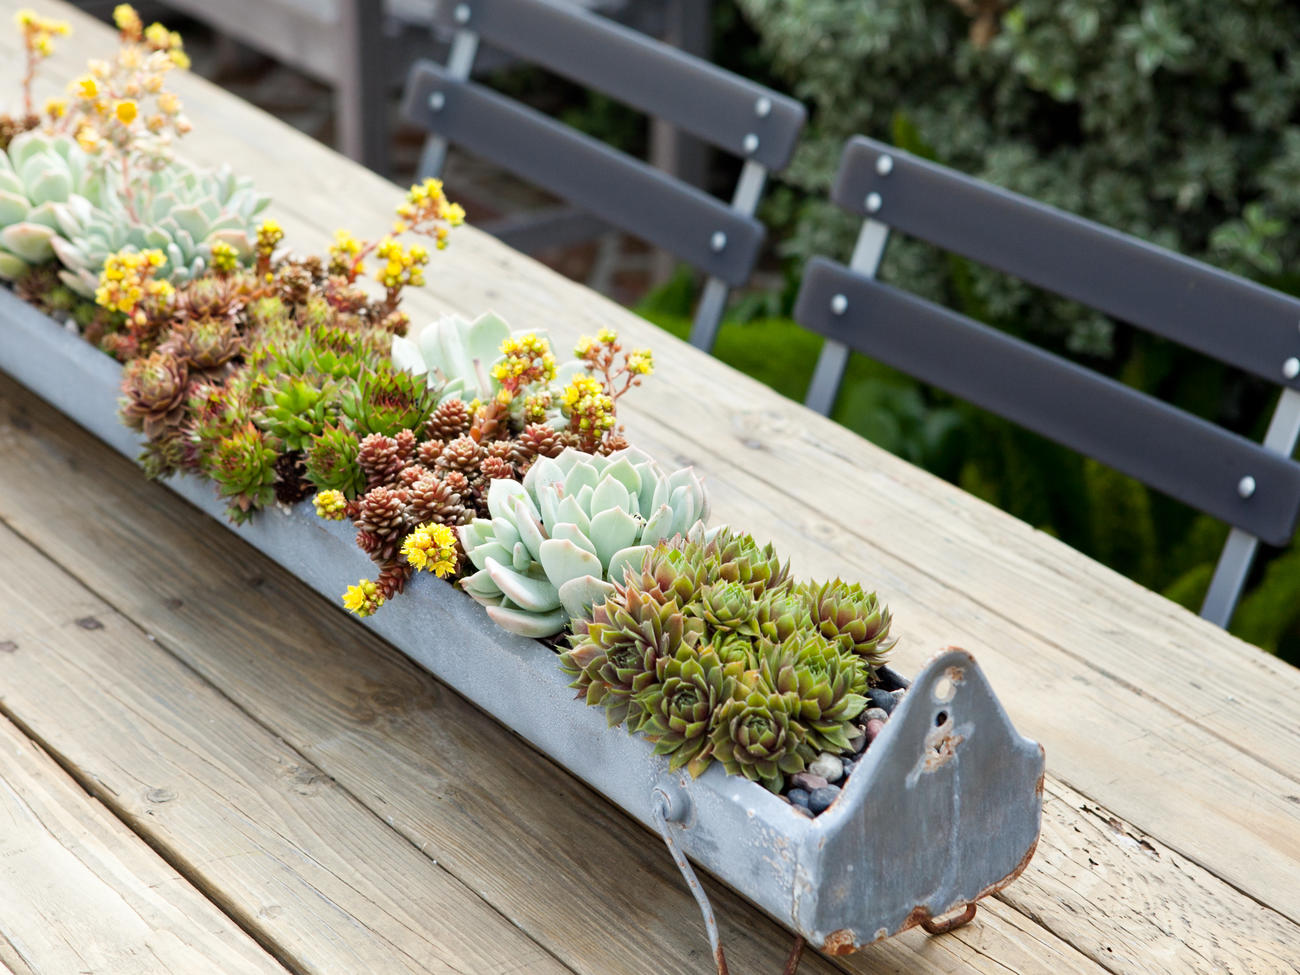 8 Foolproof Ways To Keep Your Succulents Alive